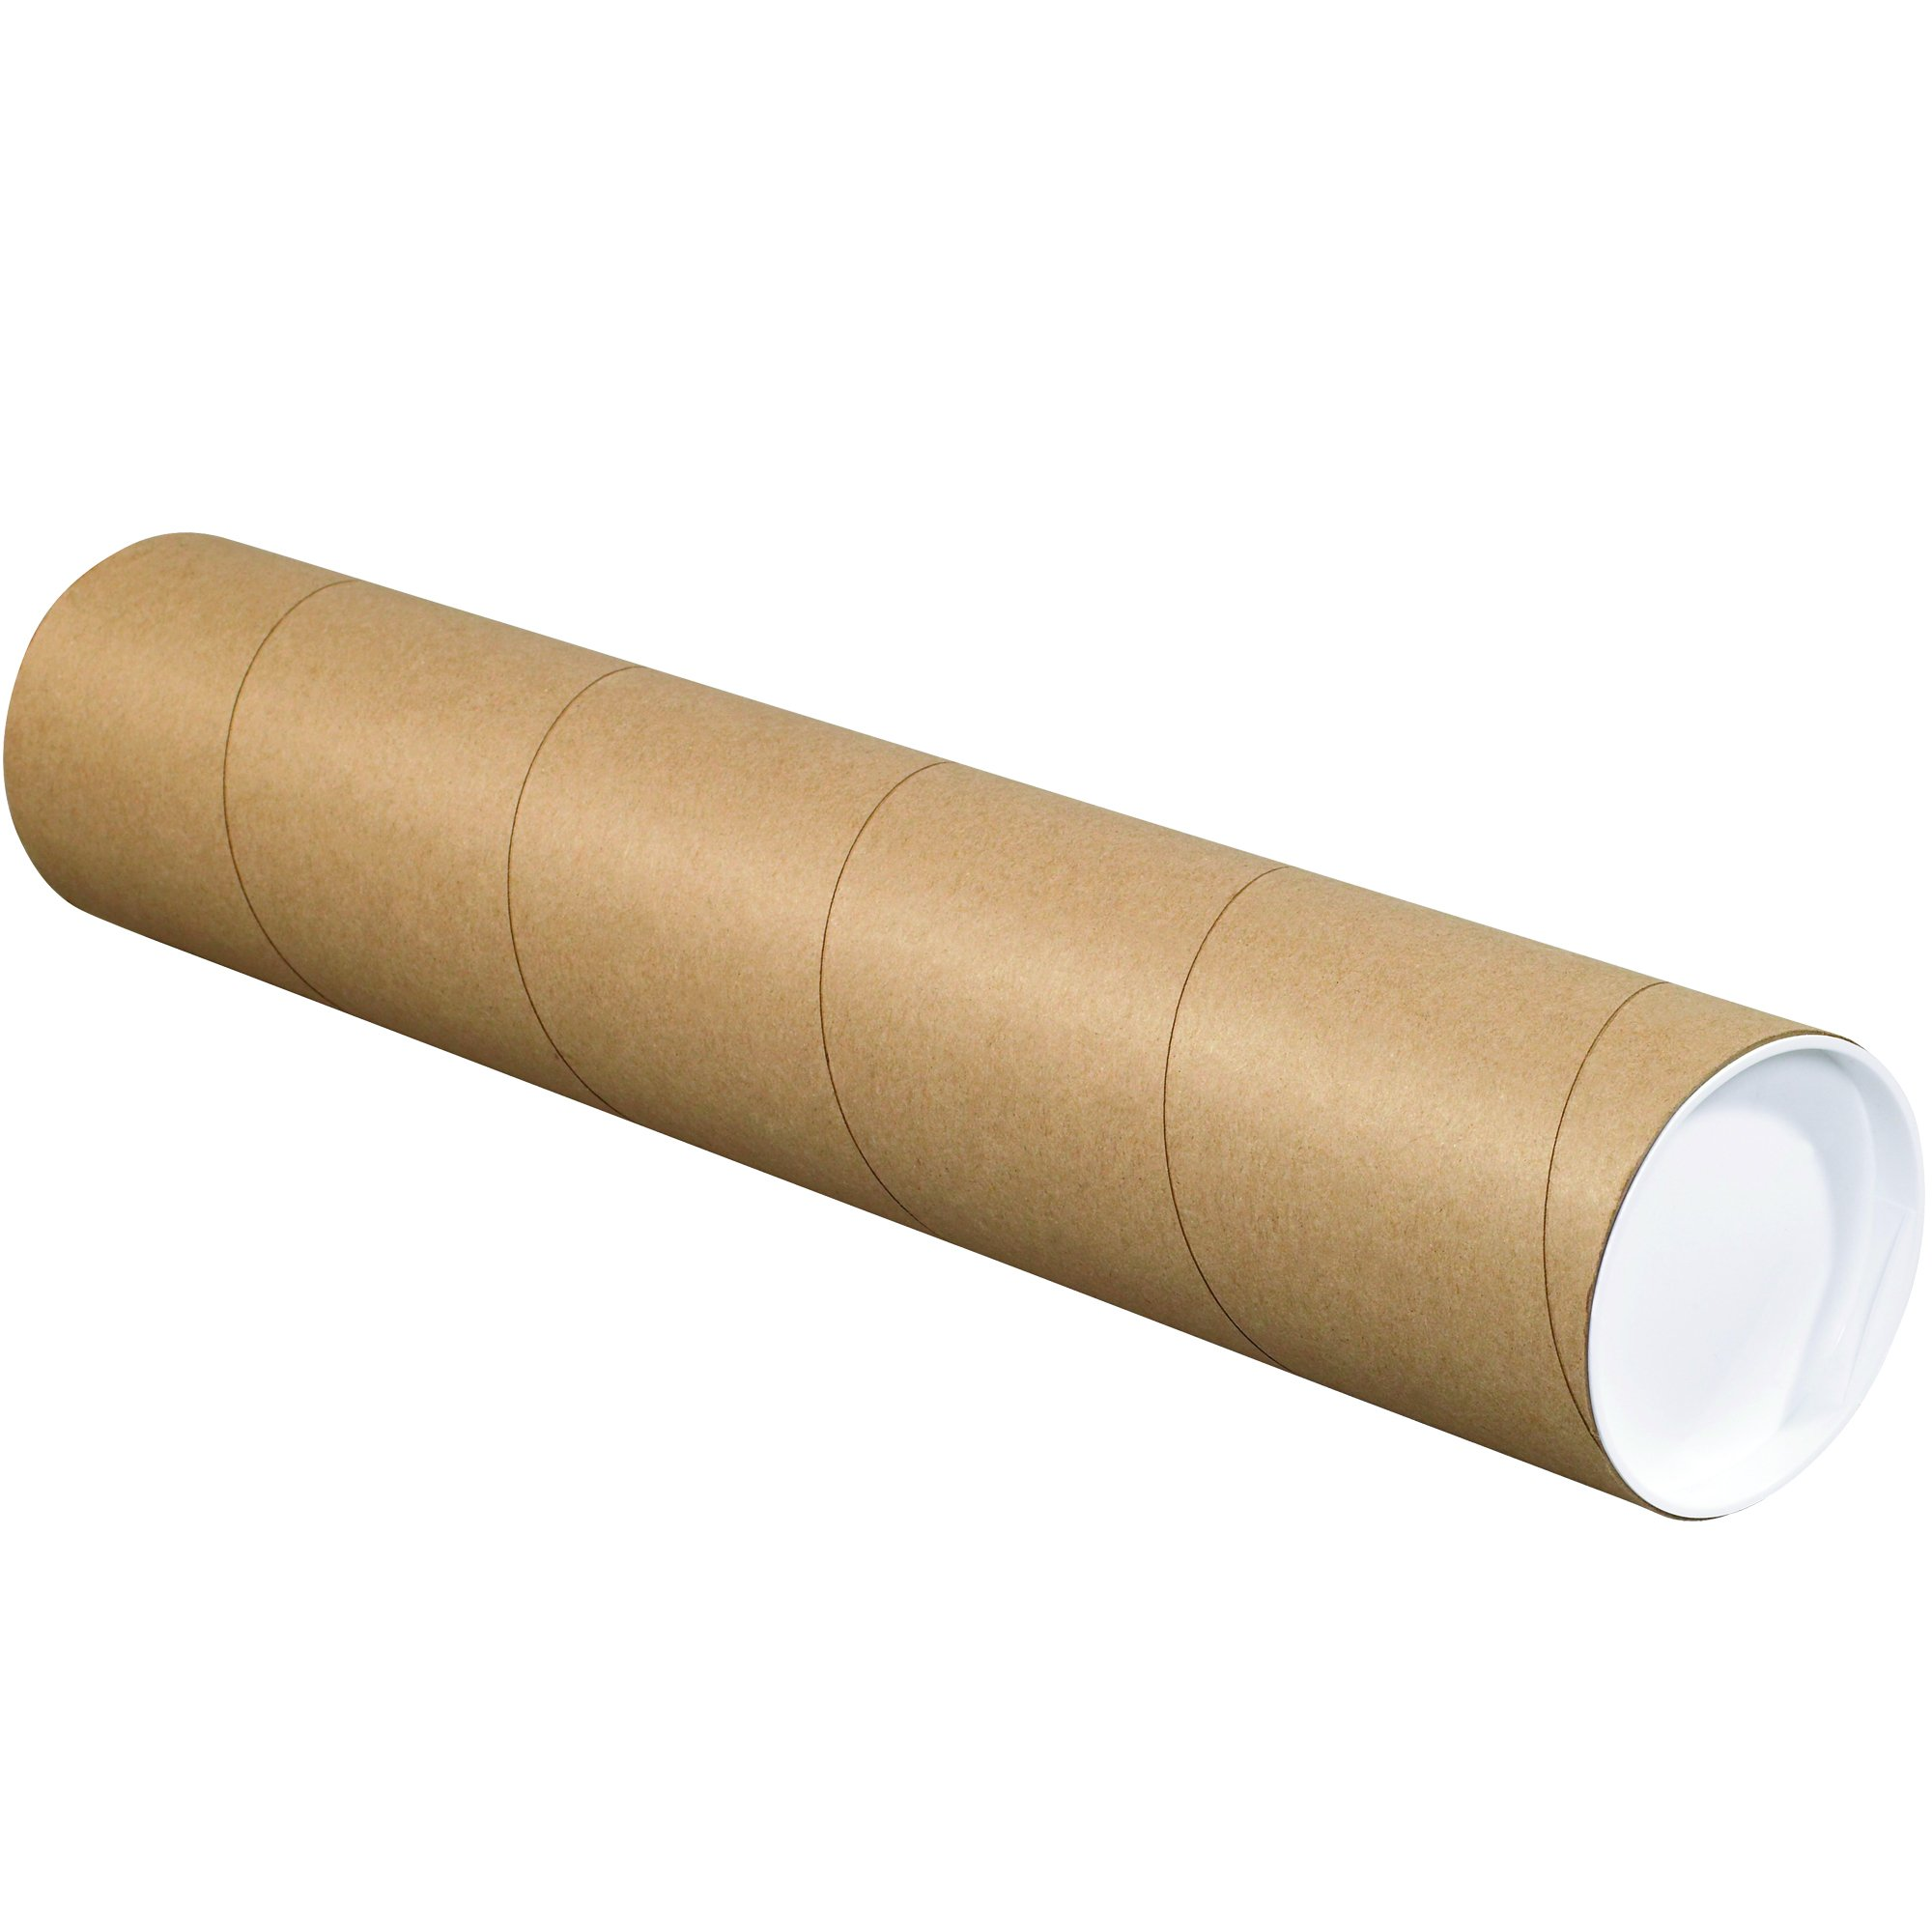 BOX USA BP4048K Mailing Tubes with Caps, 4'' x 48'', Kraft (Pack of 15) by BOX USA